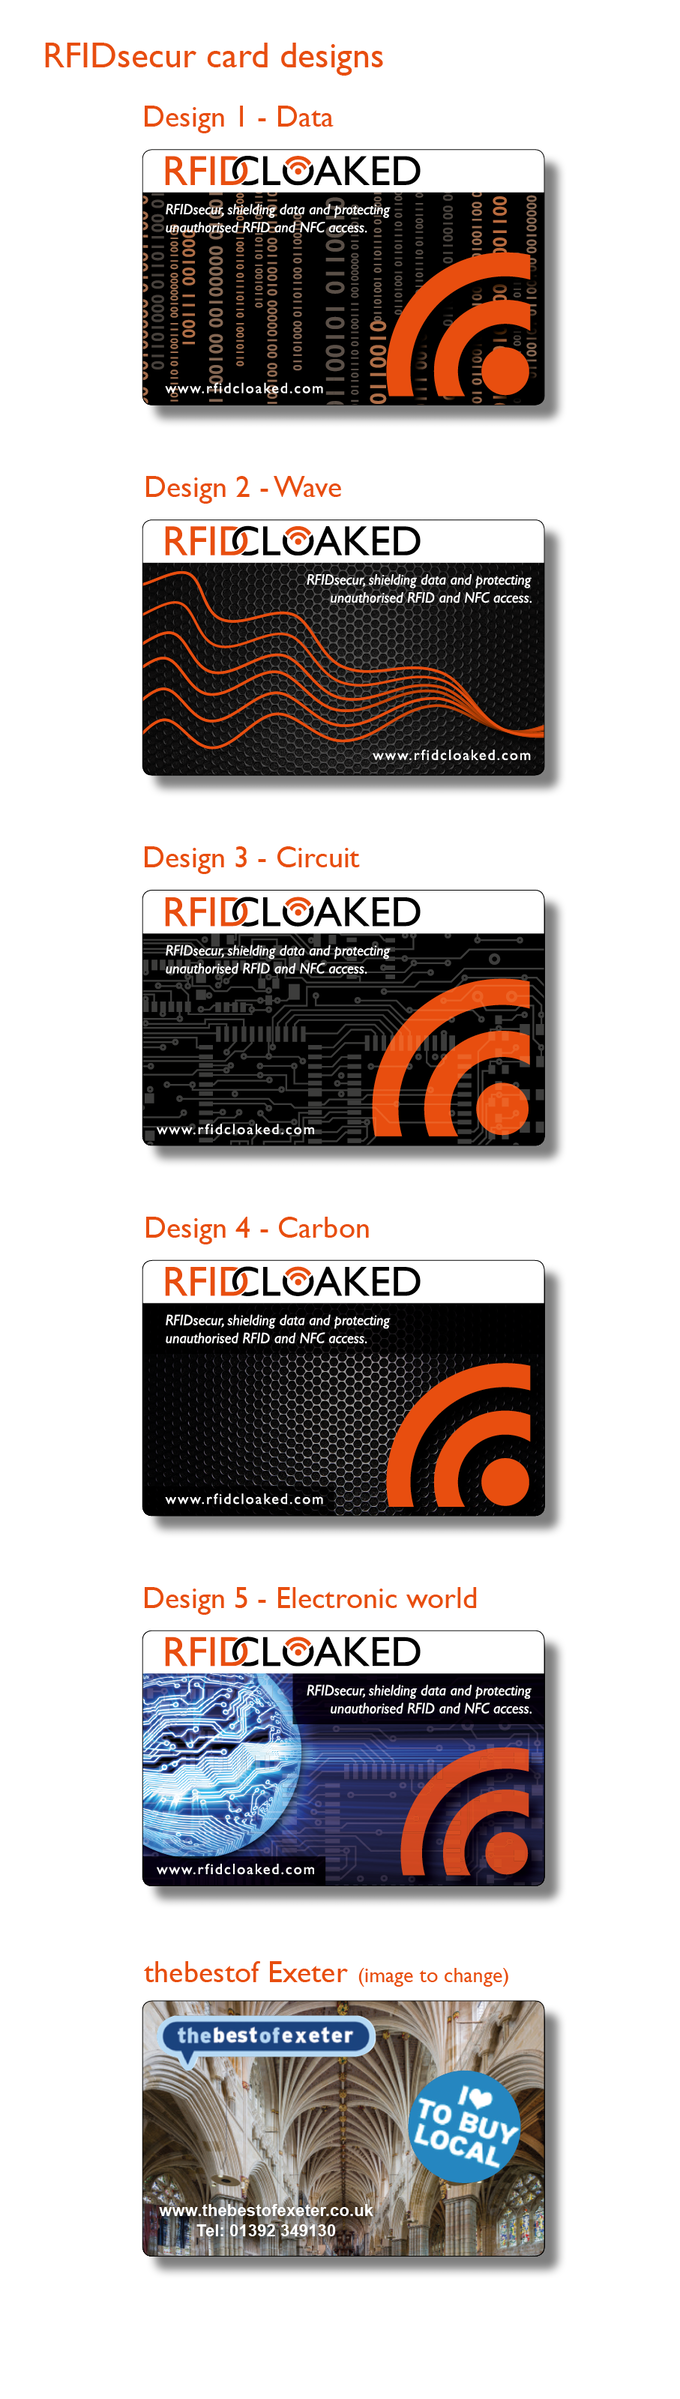 RFIDsecur card designs